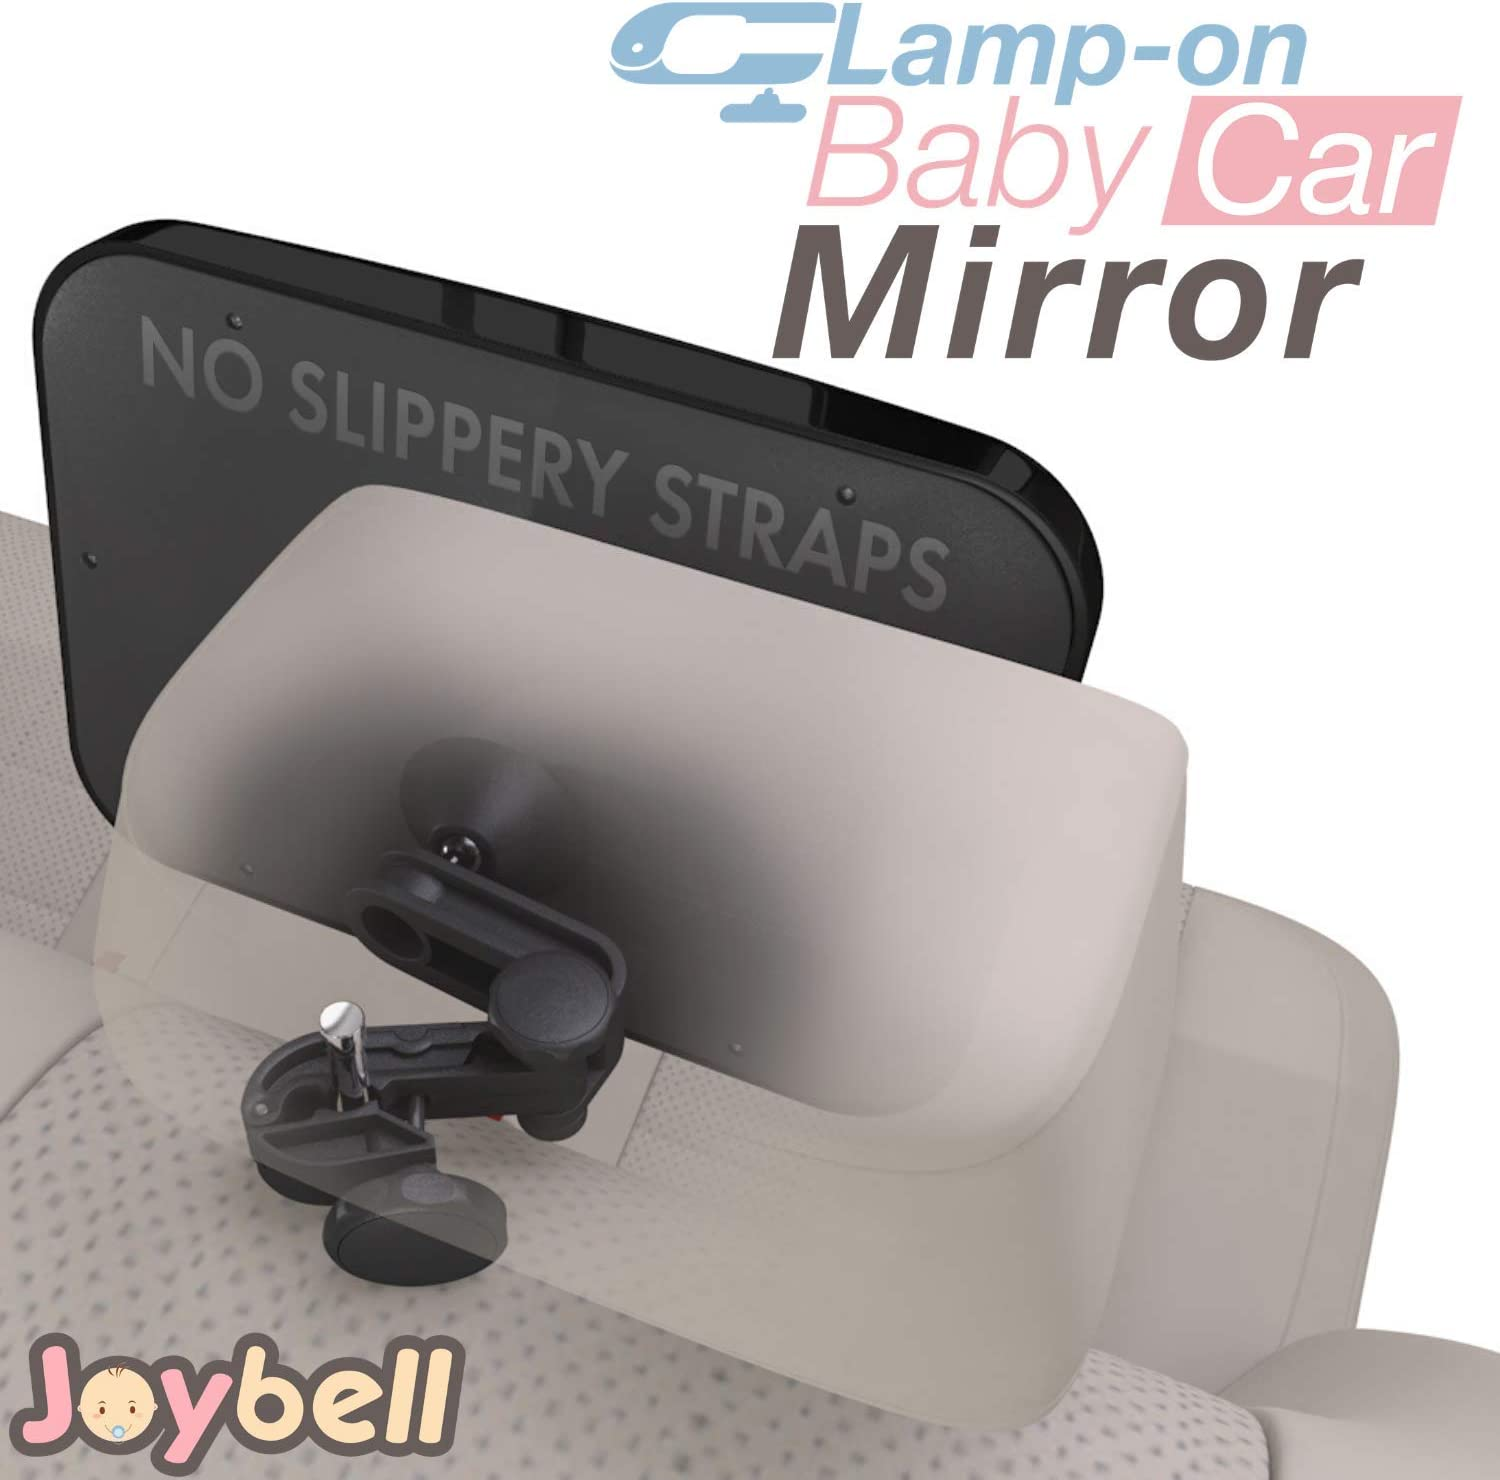 ULTRA ADJUSTABLE Baby Car Mirror To See Infant in Rear Facing Car Seat